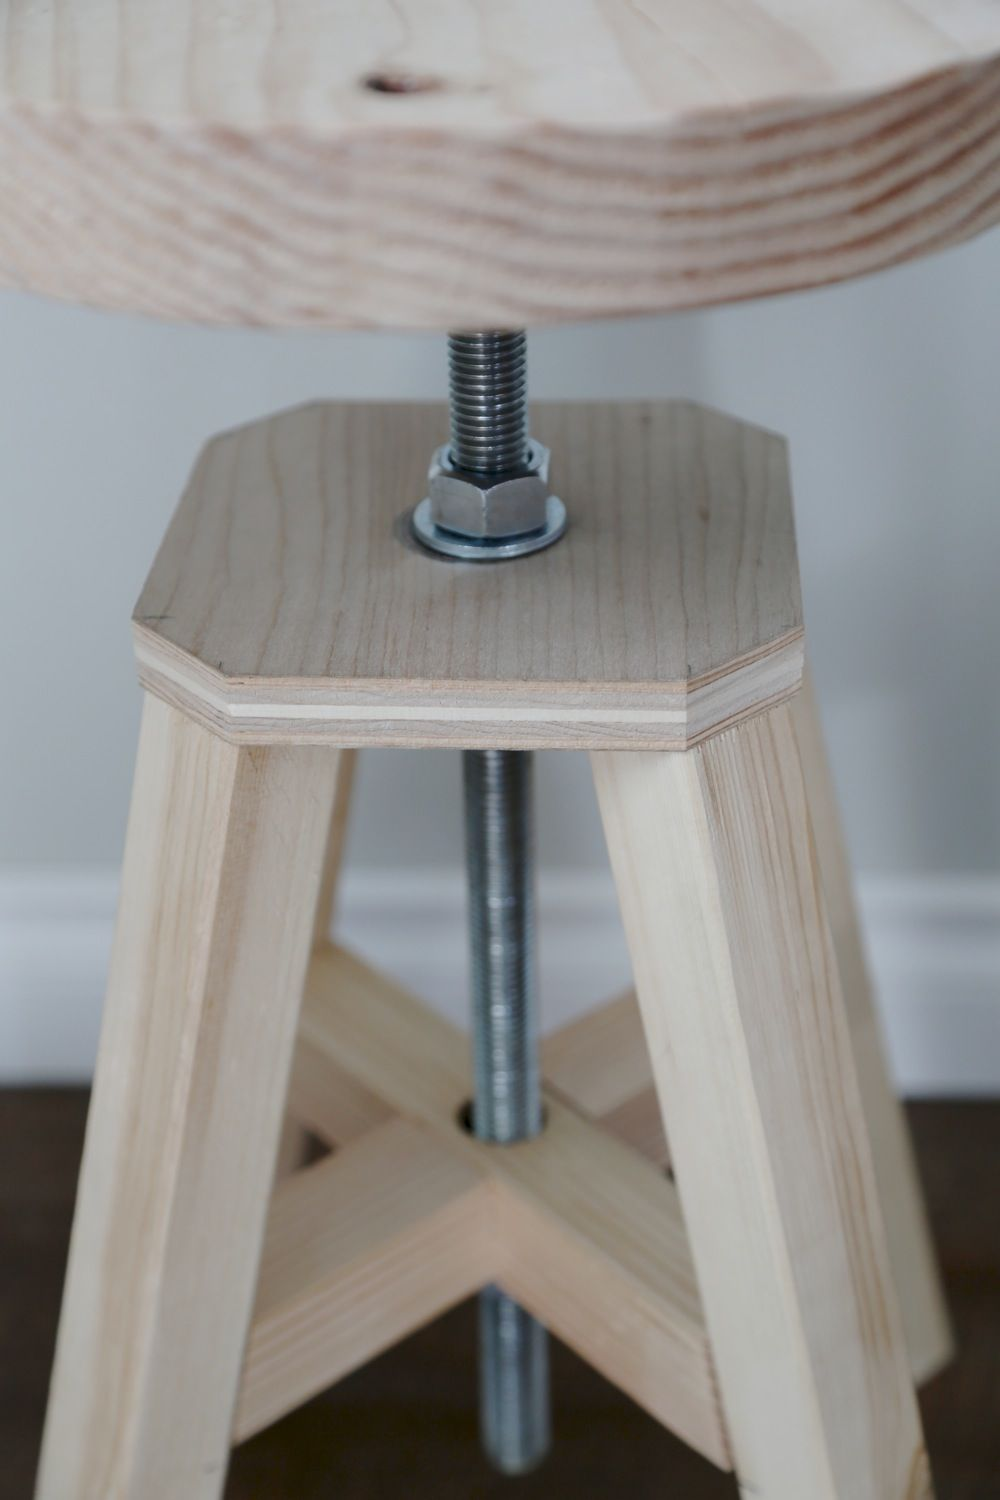 Ana White | Build A Adjustable Height Wood And Metal Stool, I Love Building  Things!!!!! DIY Furniture, The DIY Life | Free And Easy DIY Project And ...